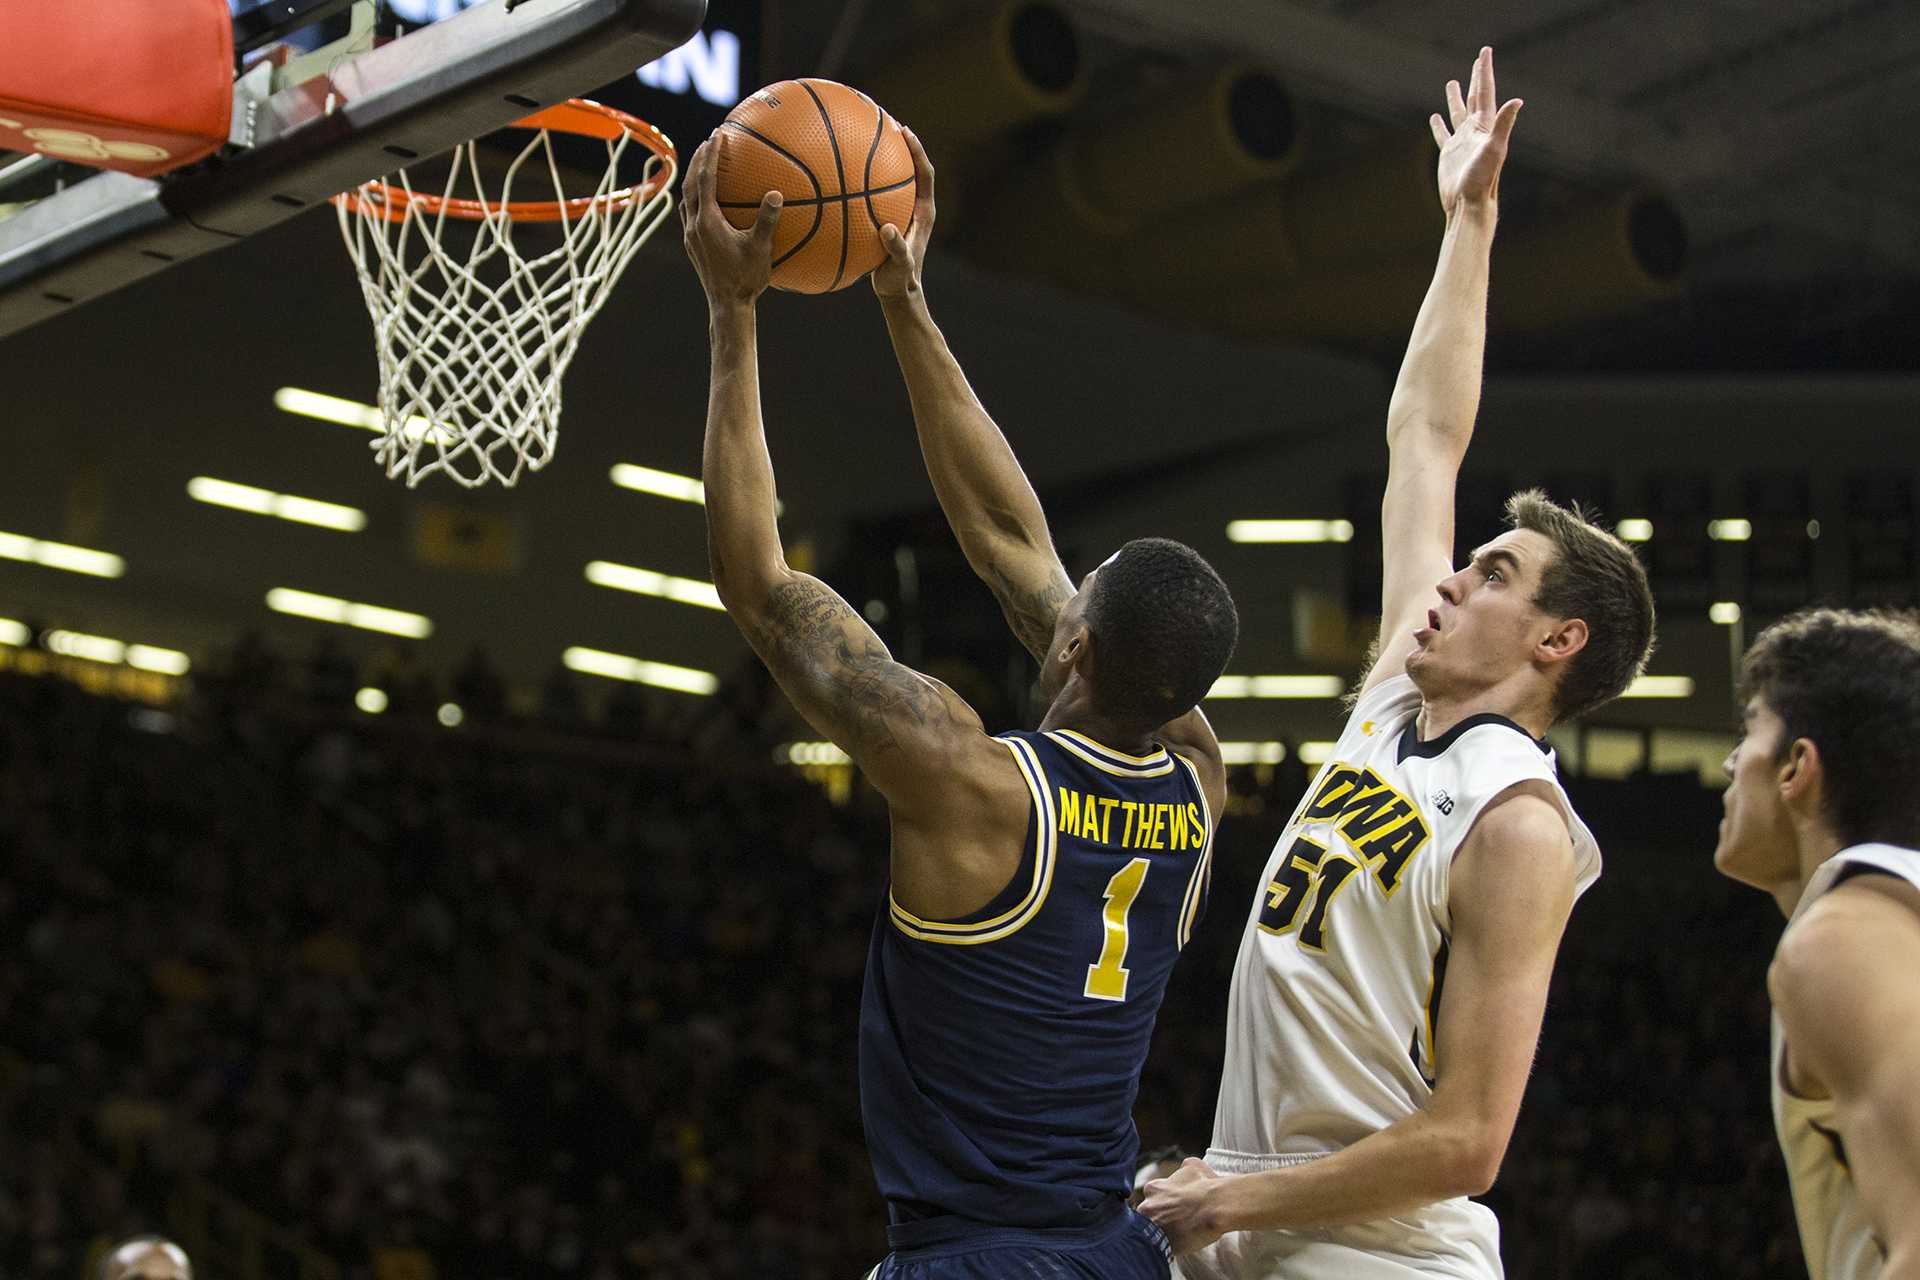 Michigan guard Charles Matthews (1) dunks the ball in front of Iowa's Nicholas Baer (51) during the NCAA basketball game between Iowa and Michigan at Carver-Hawkeye Arena on Tuesday, Jan. 2, 2017. The Hawkeyes fell to the Wolverines 75-68. (Ben Allan Smith/The Daily Iowan)